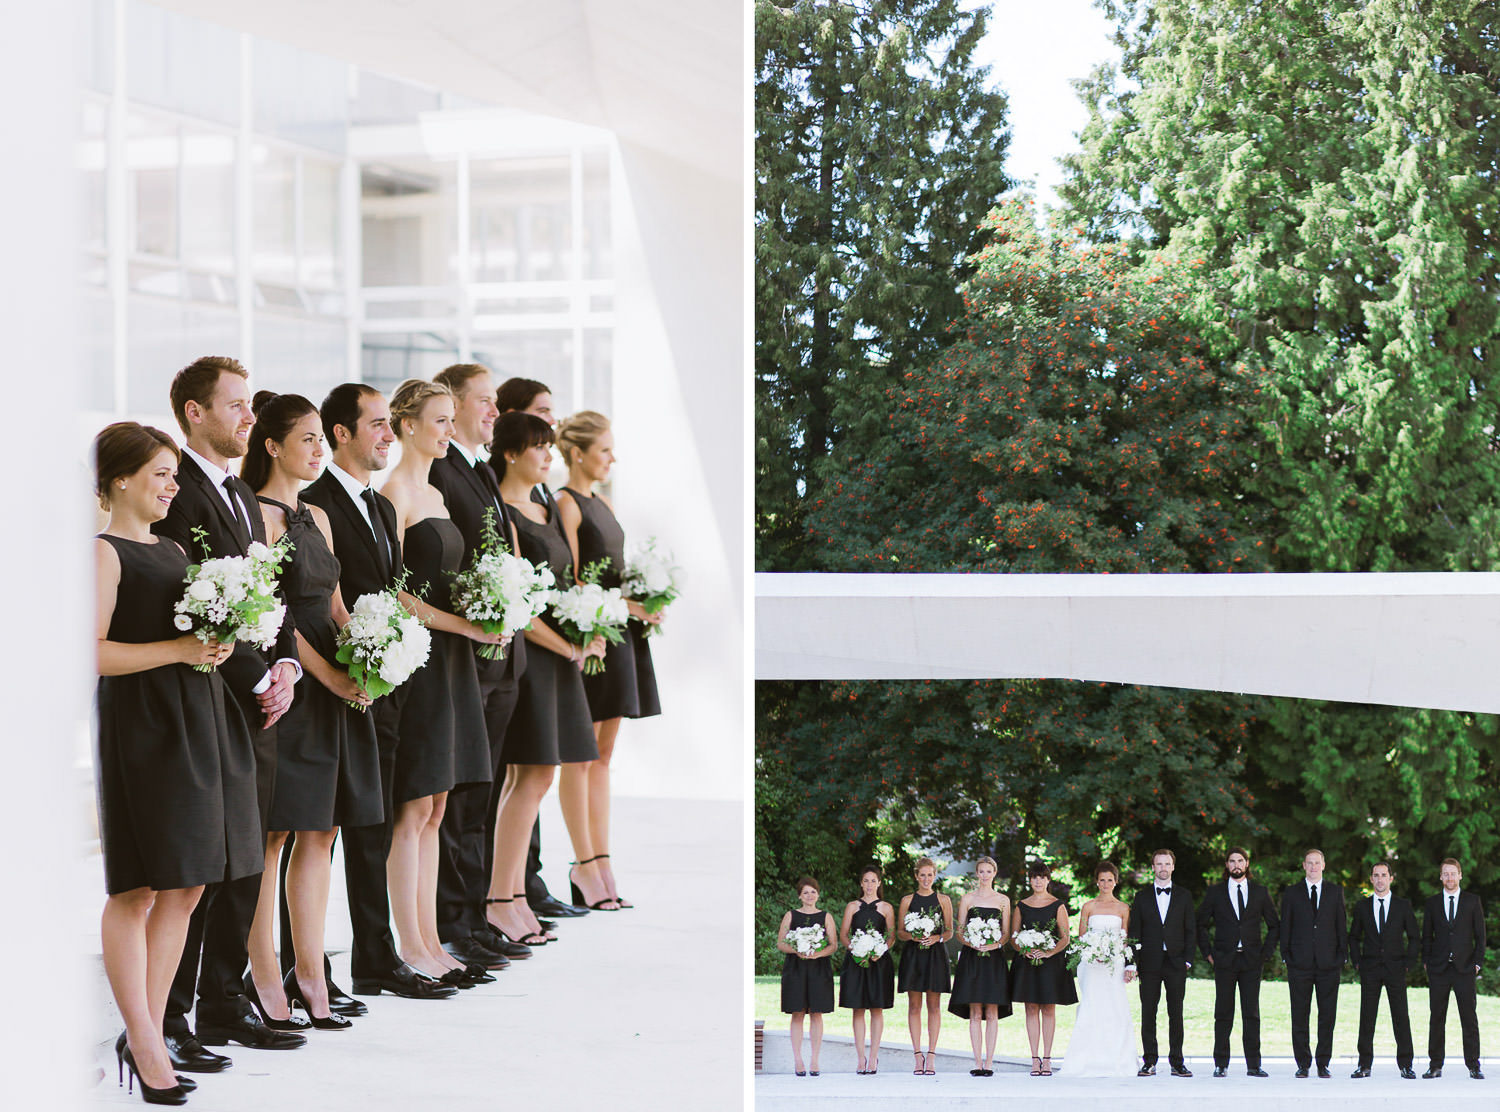 Stunning wedding party pose for formal portraits